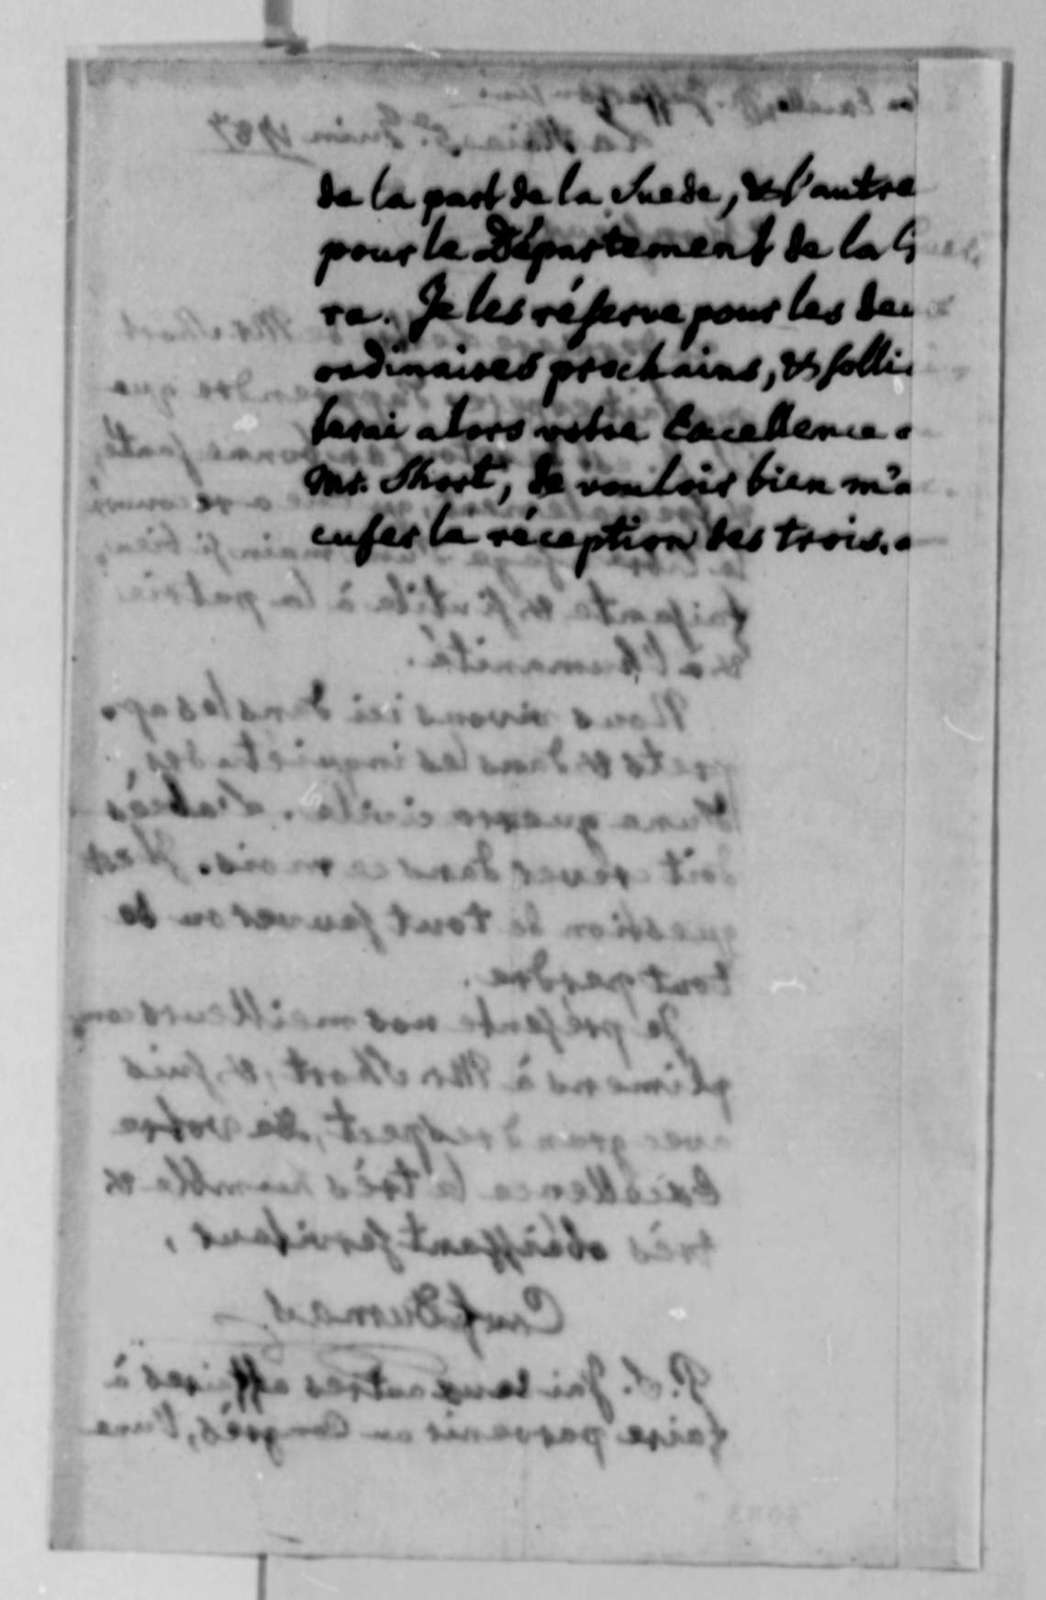 Charles William Frederic Dumas to Thomas Jefferson, June 5, 1787, in French